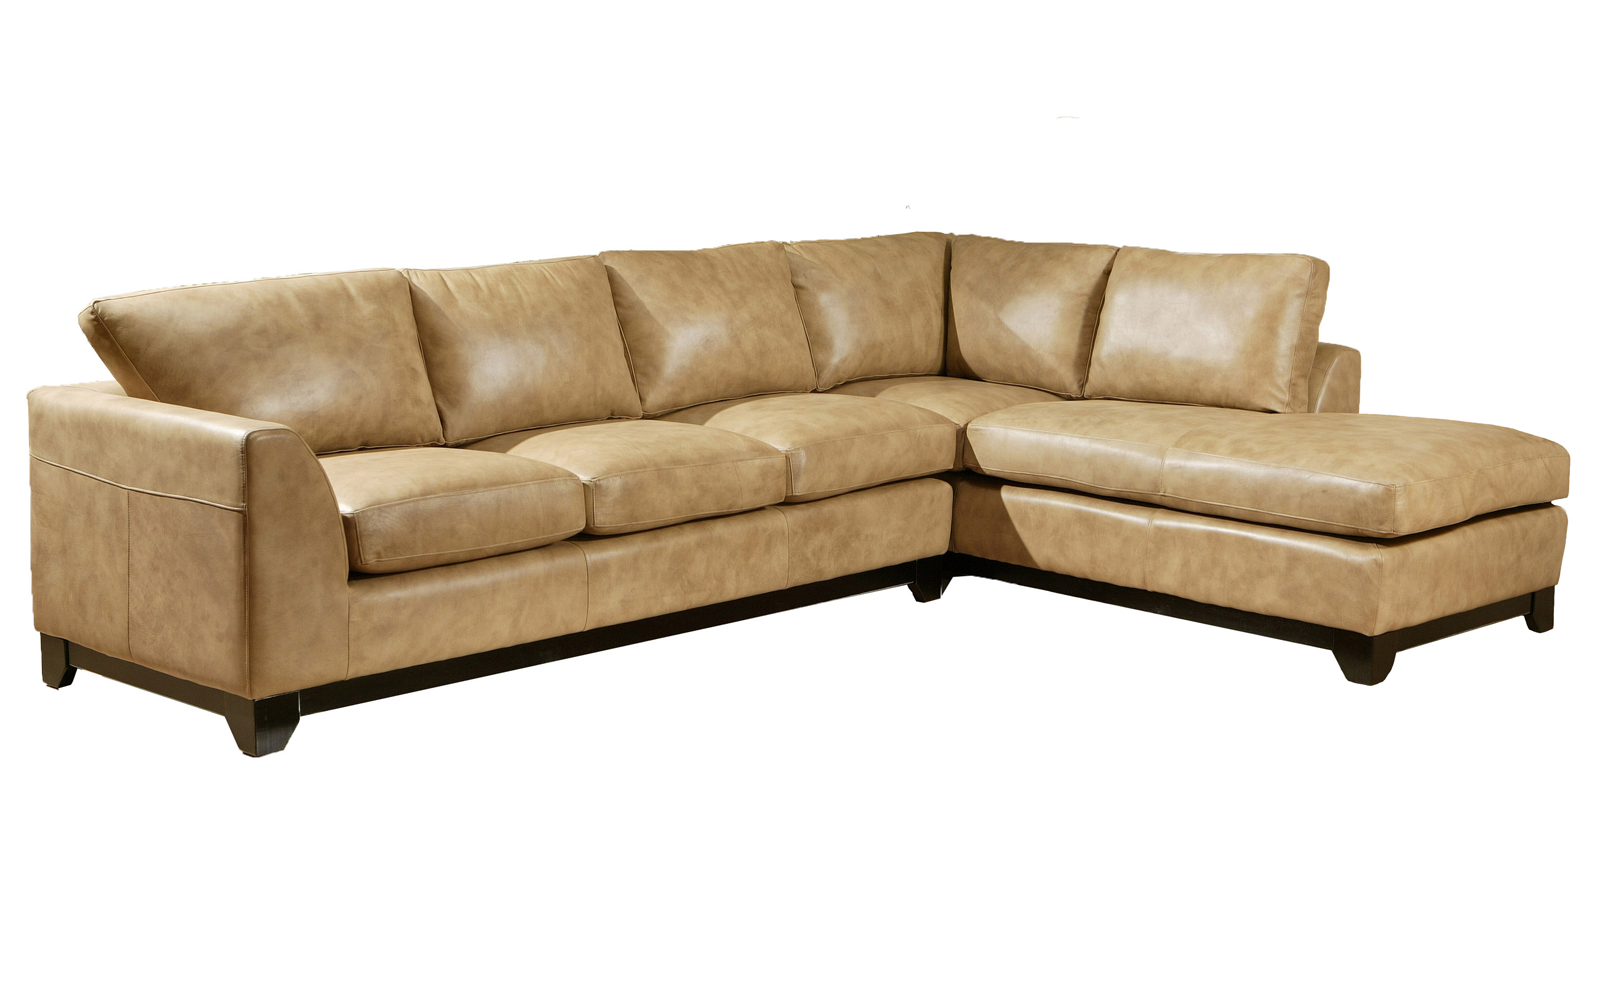 omnia furniture city sleek sofa broadway furniture